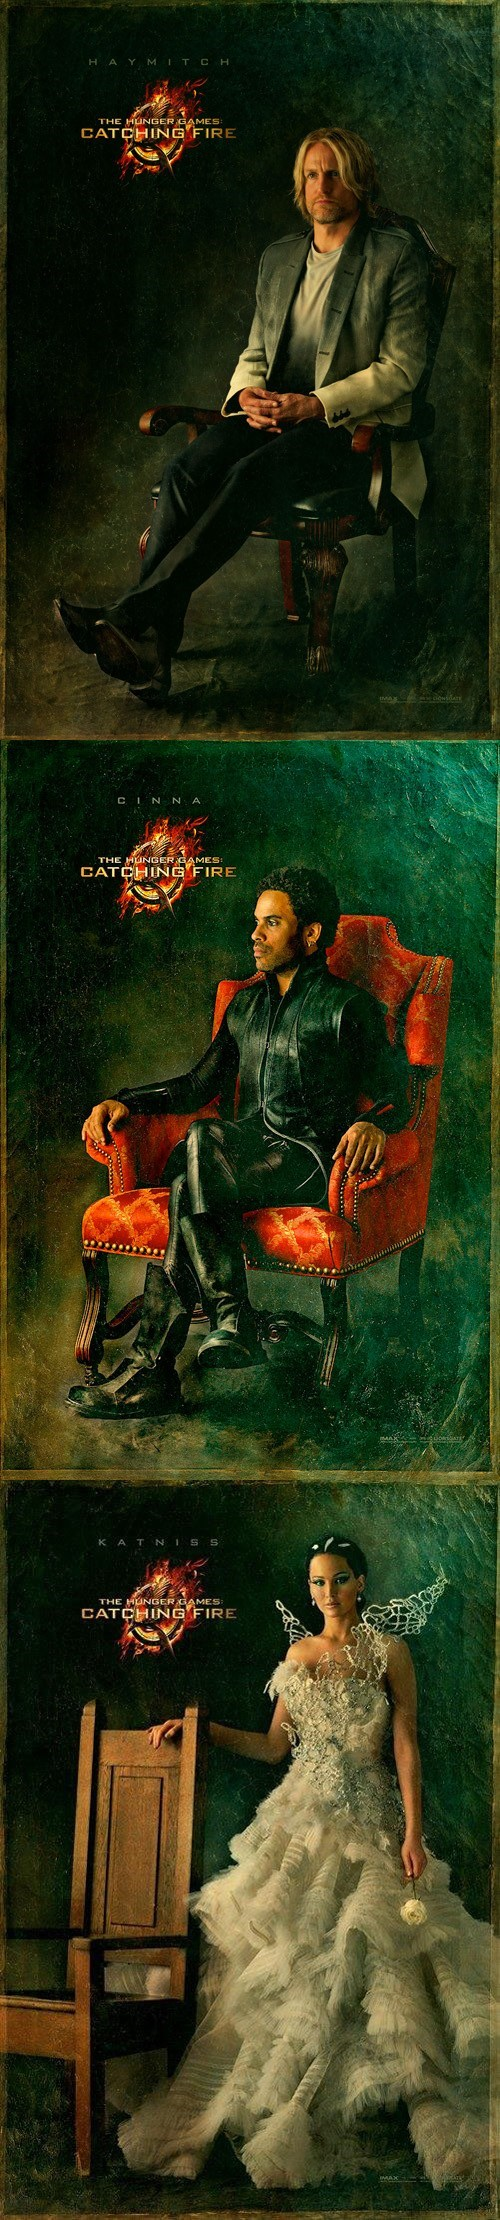 woody harrelson,jennifer lawrence,haymitch,lenny kravitz,portraits,hunger games,catching fire,cinna,katniss everdeen